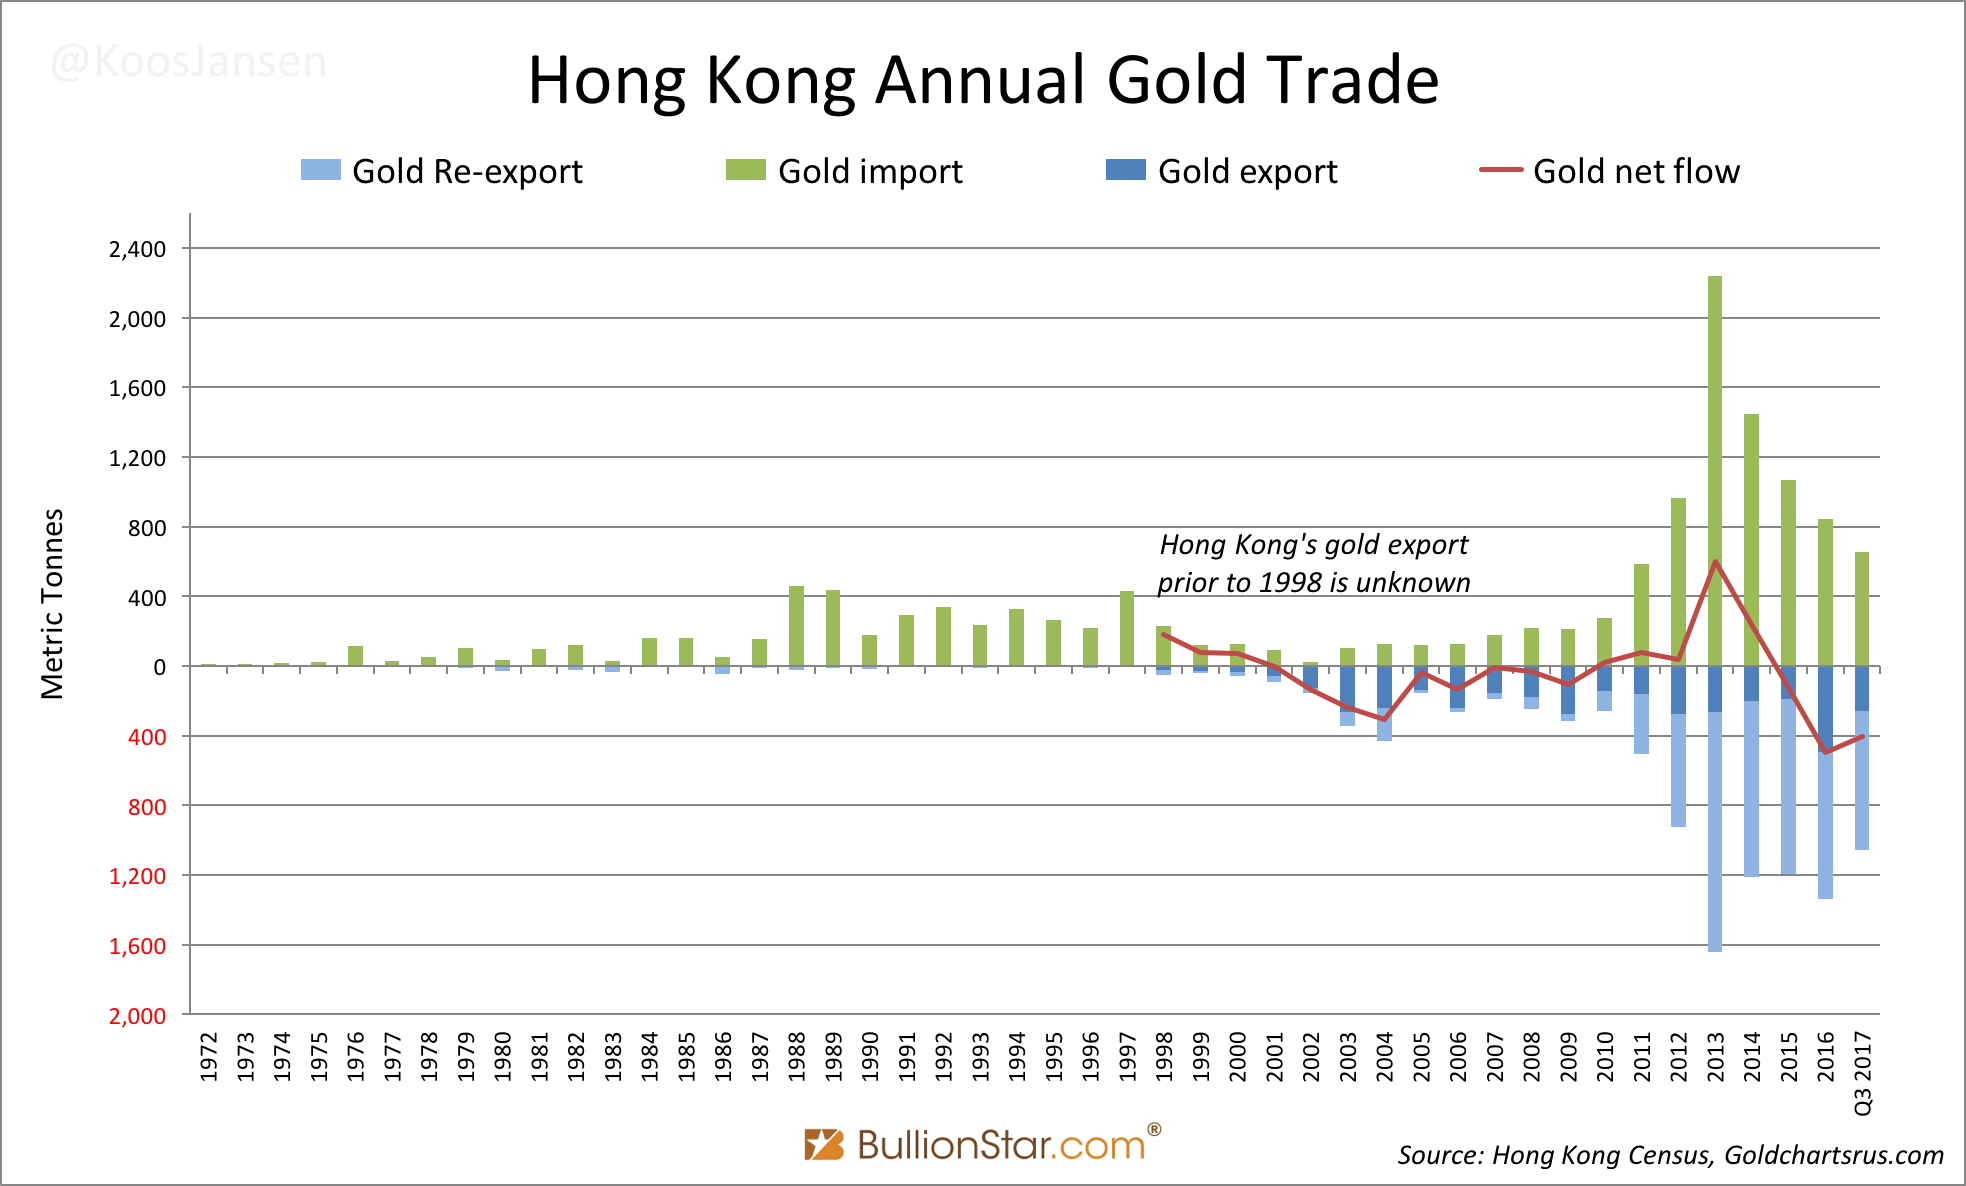 Hong Kong Annual Gold Trade, 1972 - Q3 2017